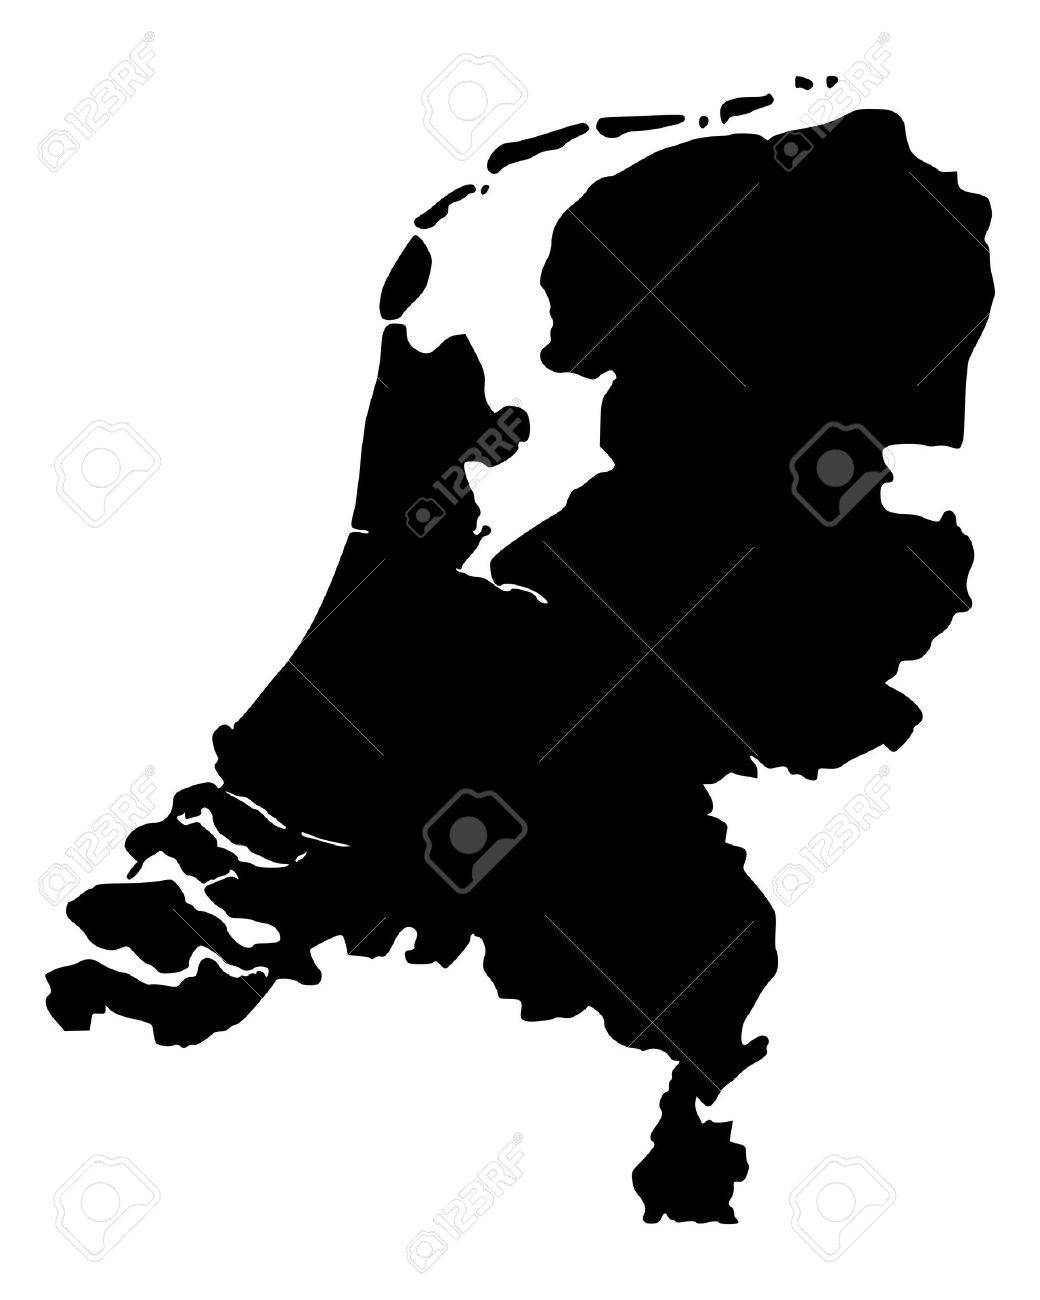 Map of the Netherlands - 13248424